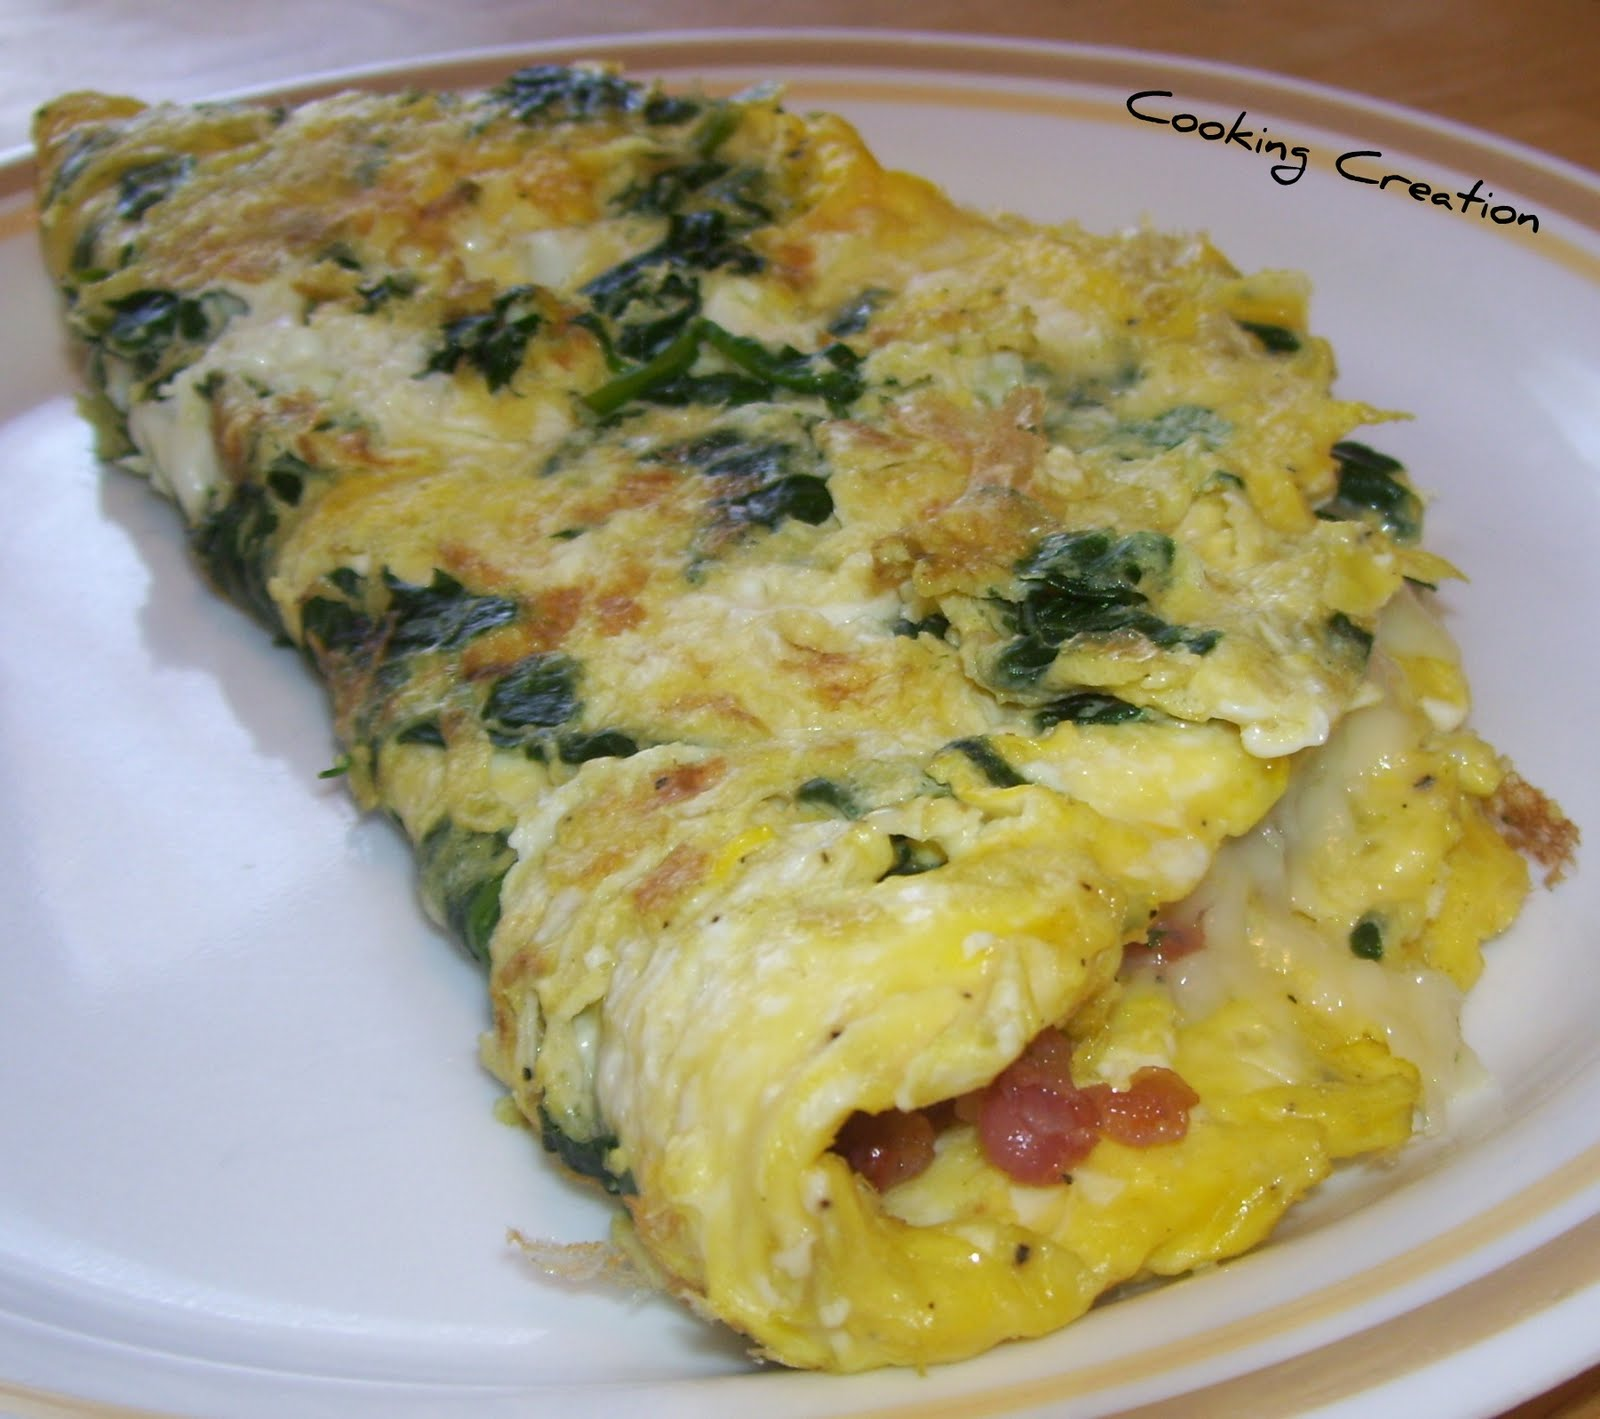 Cooking Creation: Pancetta and Spinach Omelette